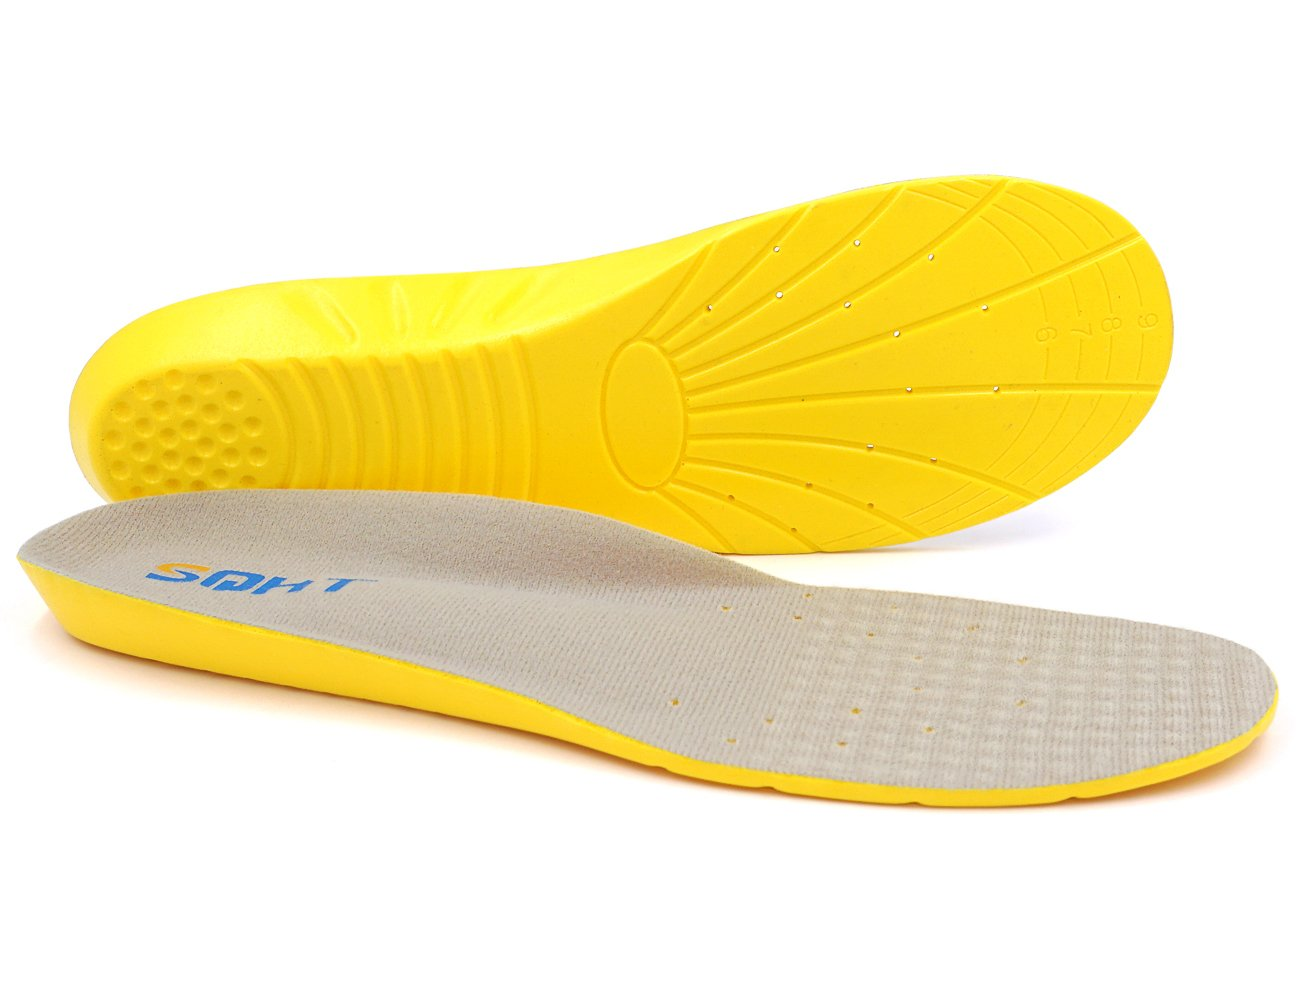 Athletic Running Shoe Insoles Comfort Foam Insert Providing Excellent Shock Absorption and Neutral Arch Support, Orthotic Insoles (M | 5~8.5 Men's/6~10 Women's)